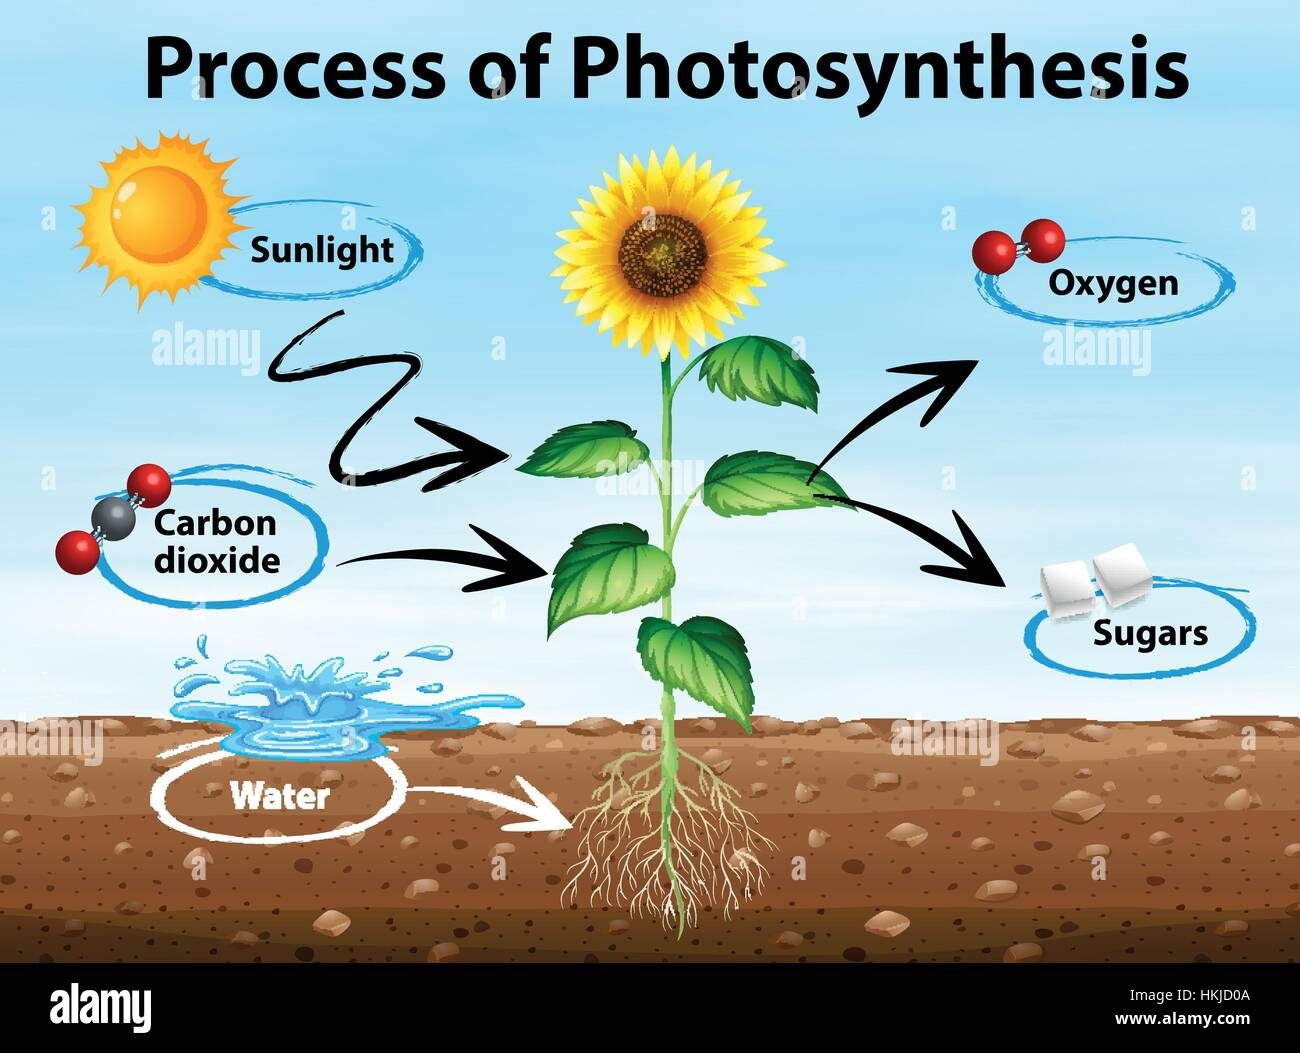 Diagram showing process of photosynthesis illustration stock vector diagram showing process of photosynthesis illustration ccuart Images